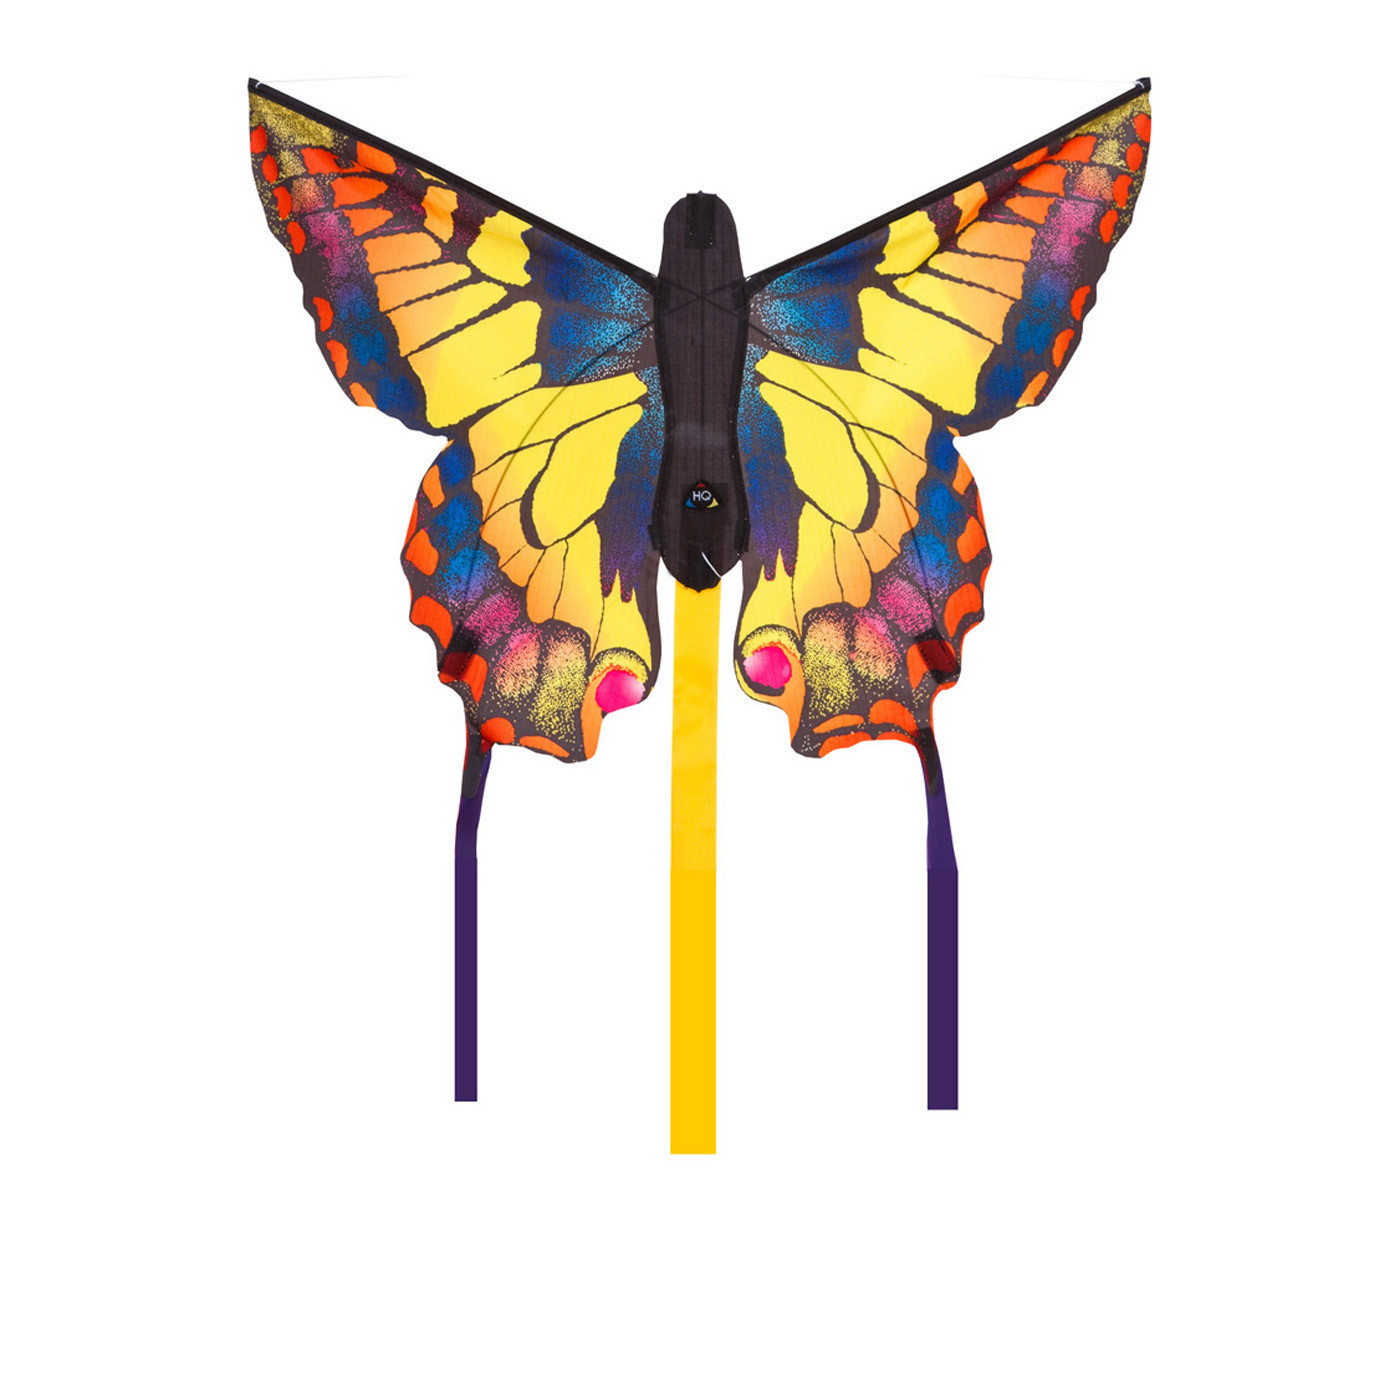 Butterfly kite swallowtail r kites wind designs for Indoor kite design